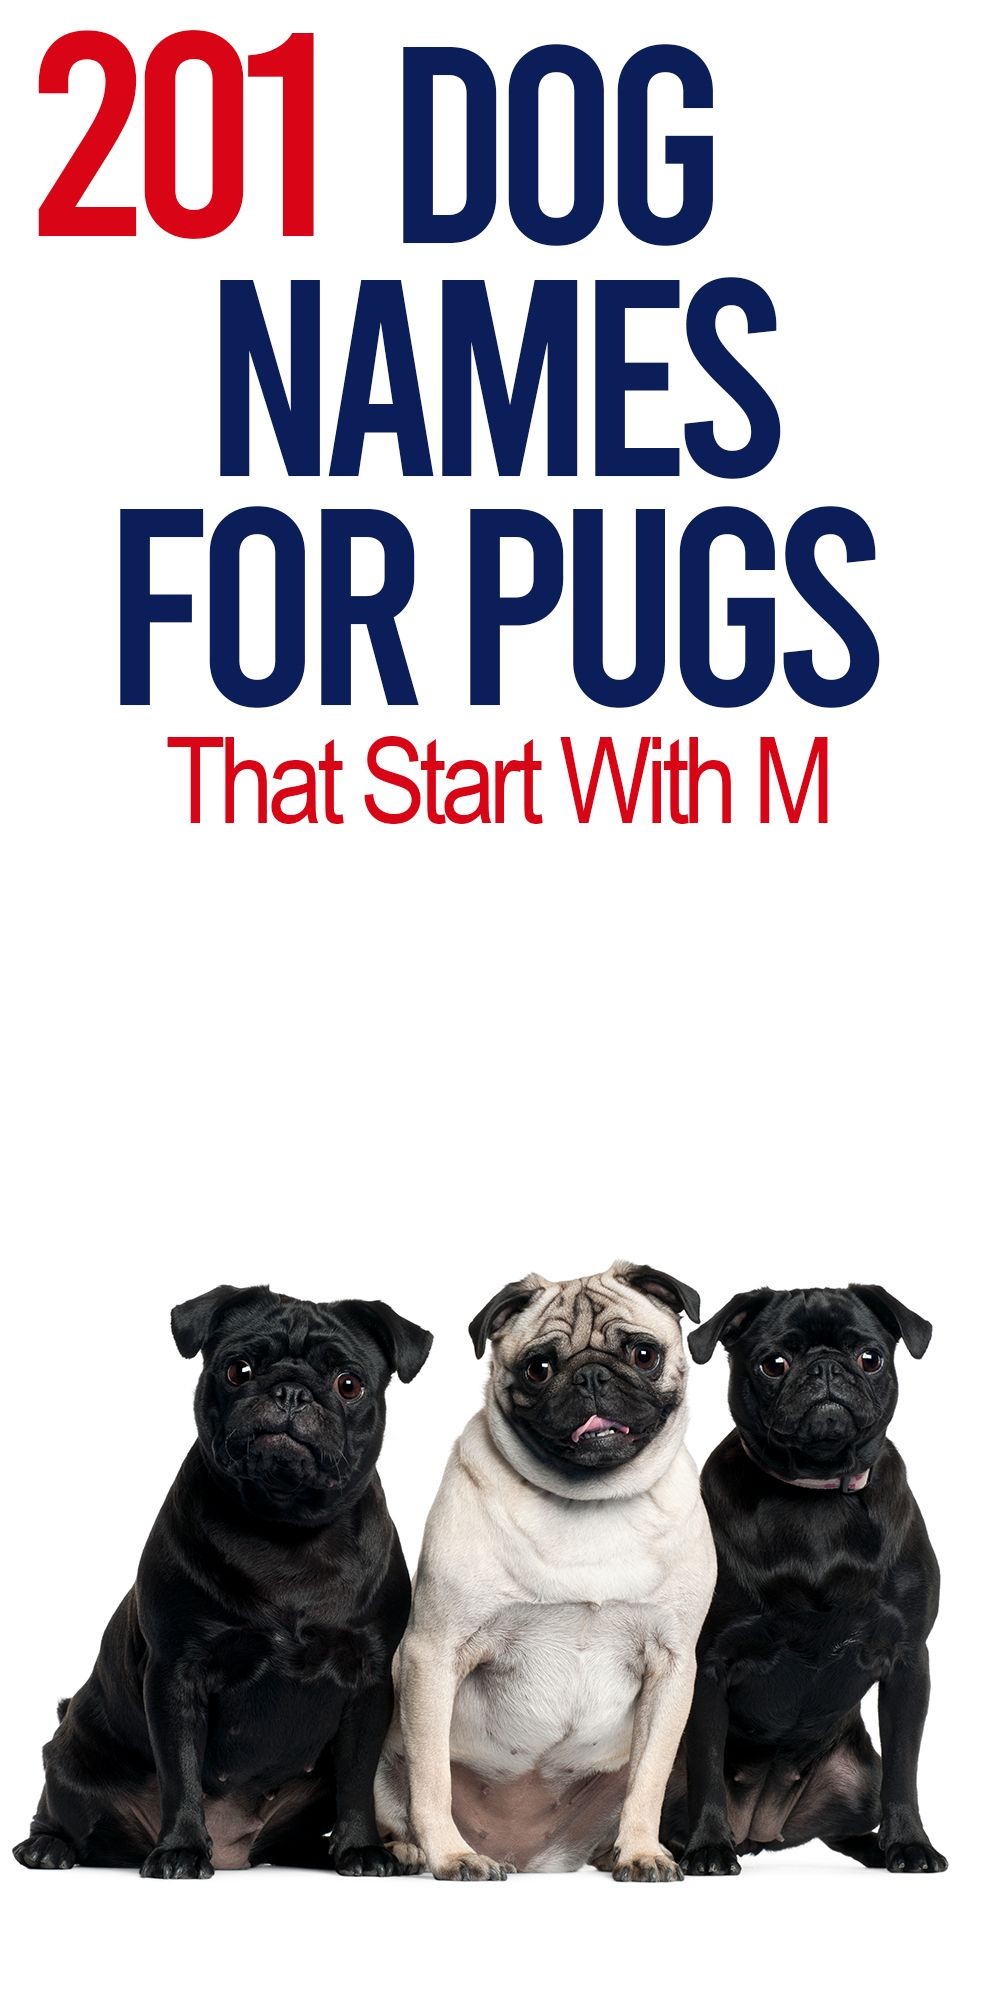 Pug Names That Start With M The Most Popular Options in